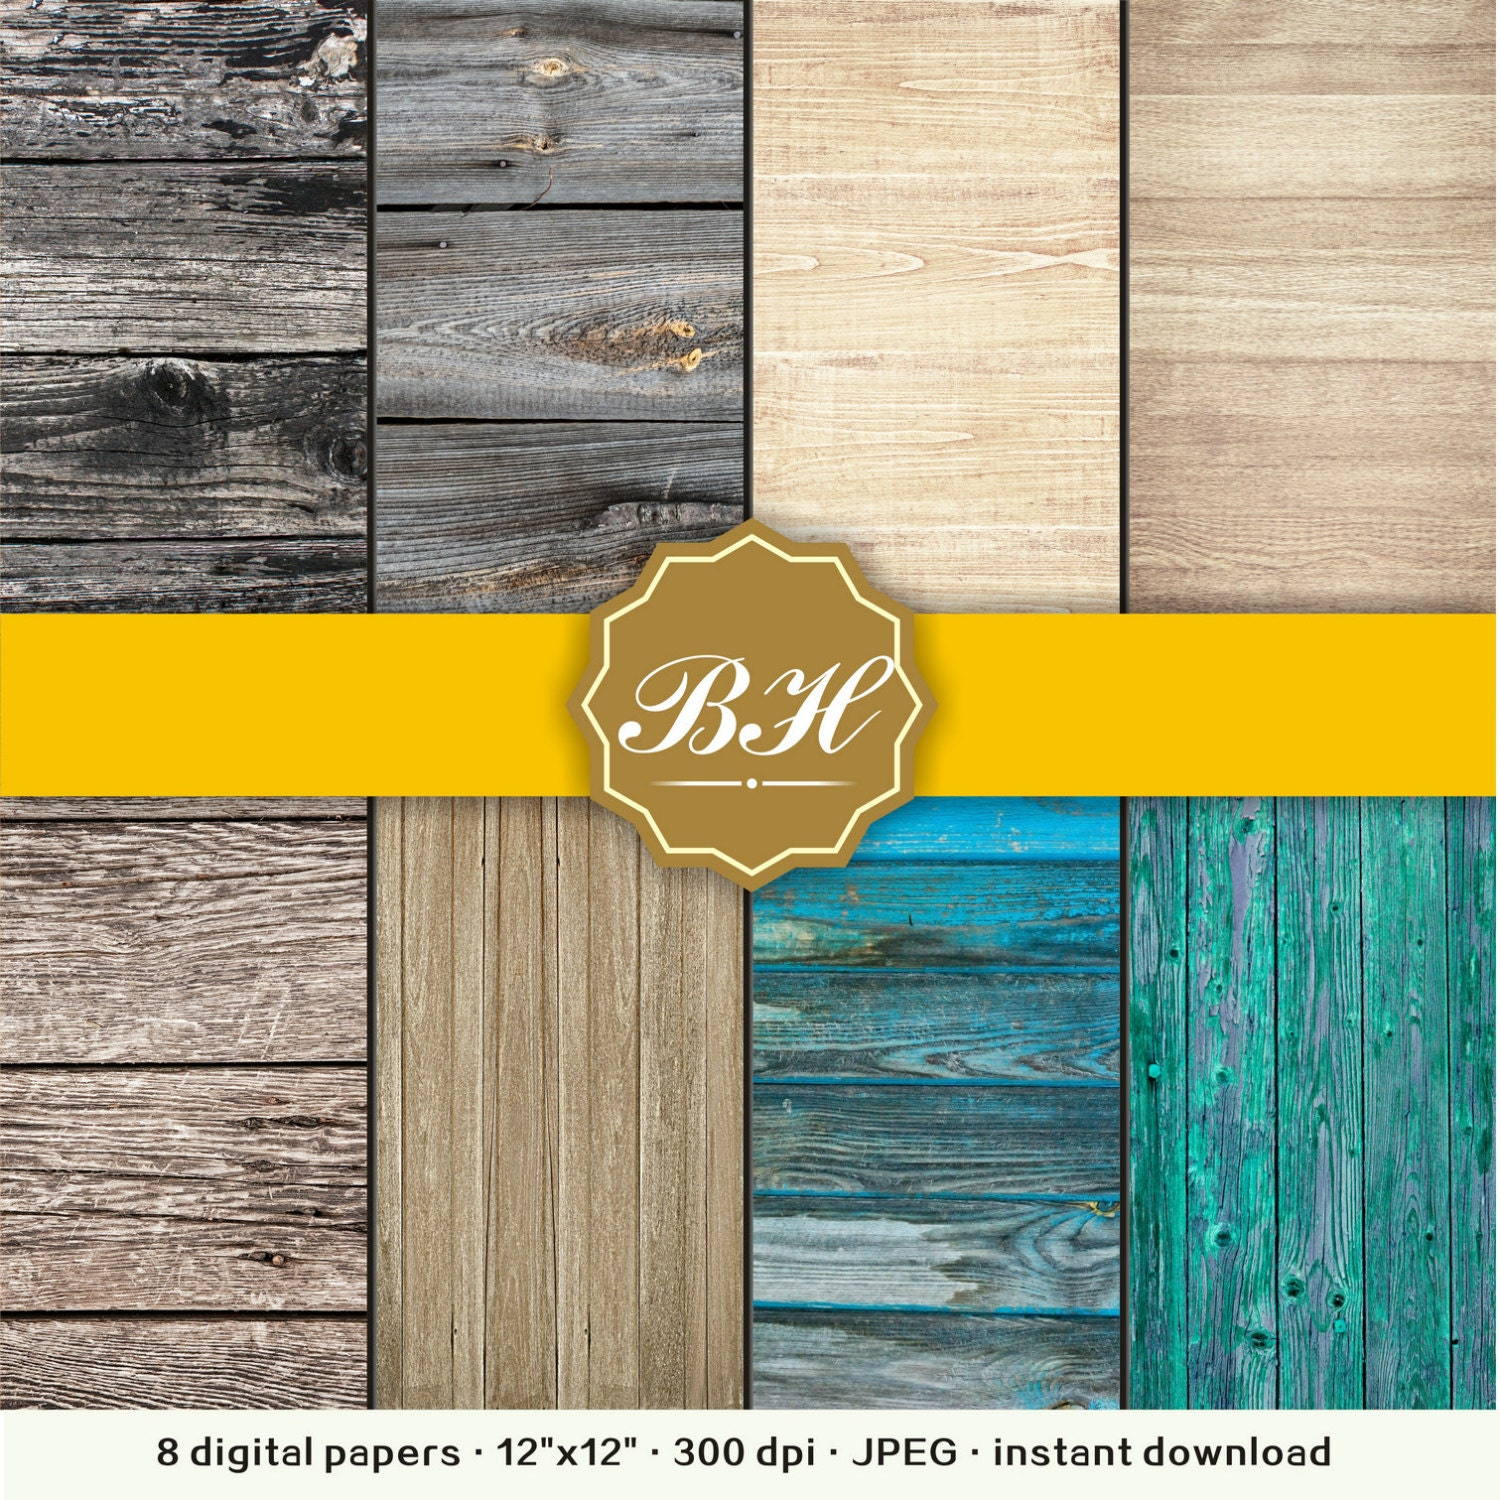 Scrapbook paper wood grain - Wood Digital Paper Digital Wood Wood Background Rustic Wood Paper Natural Wood Grain Wood Paper Wood Scrapbooking Paper Printable